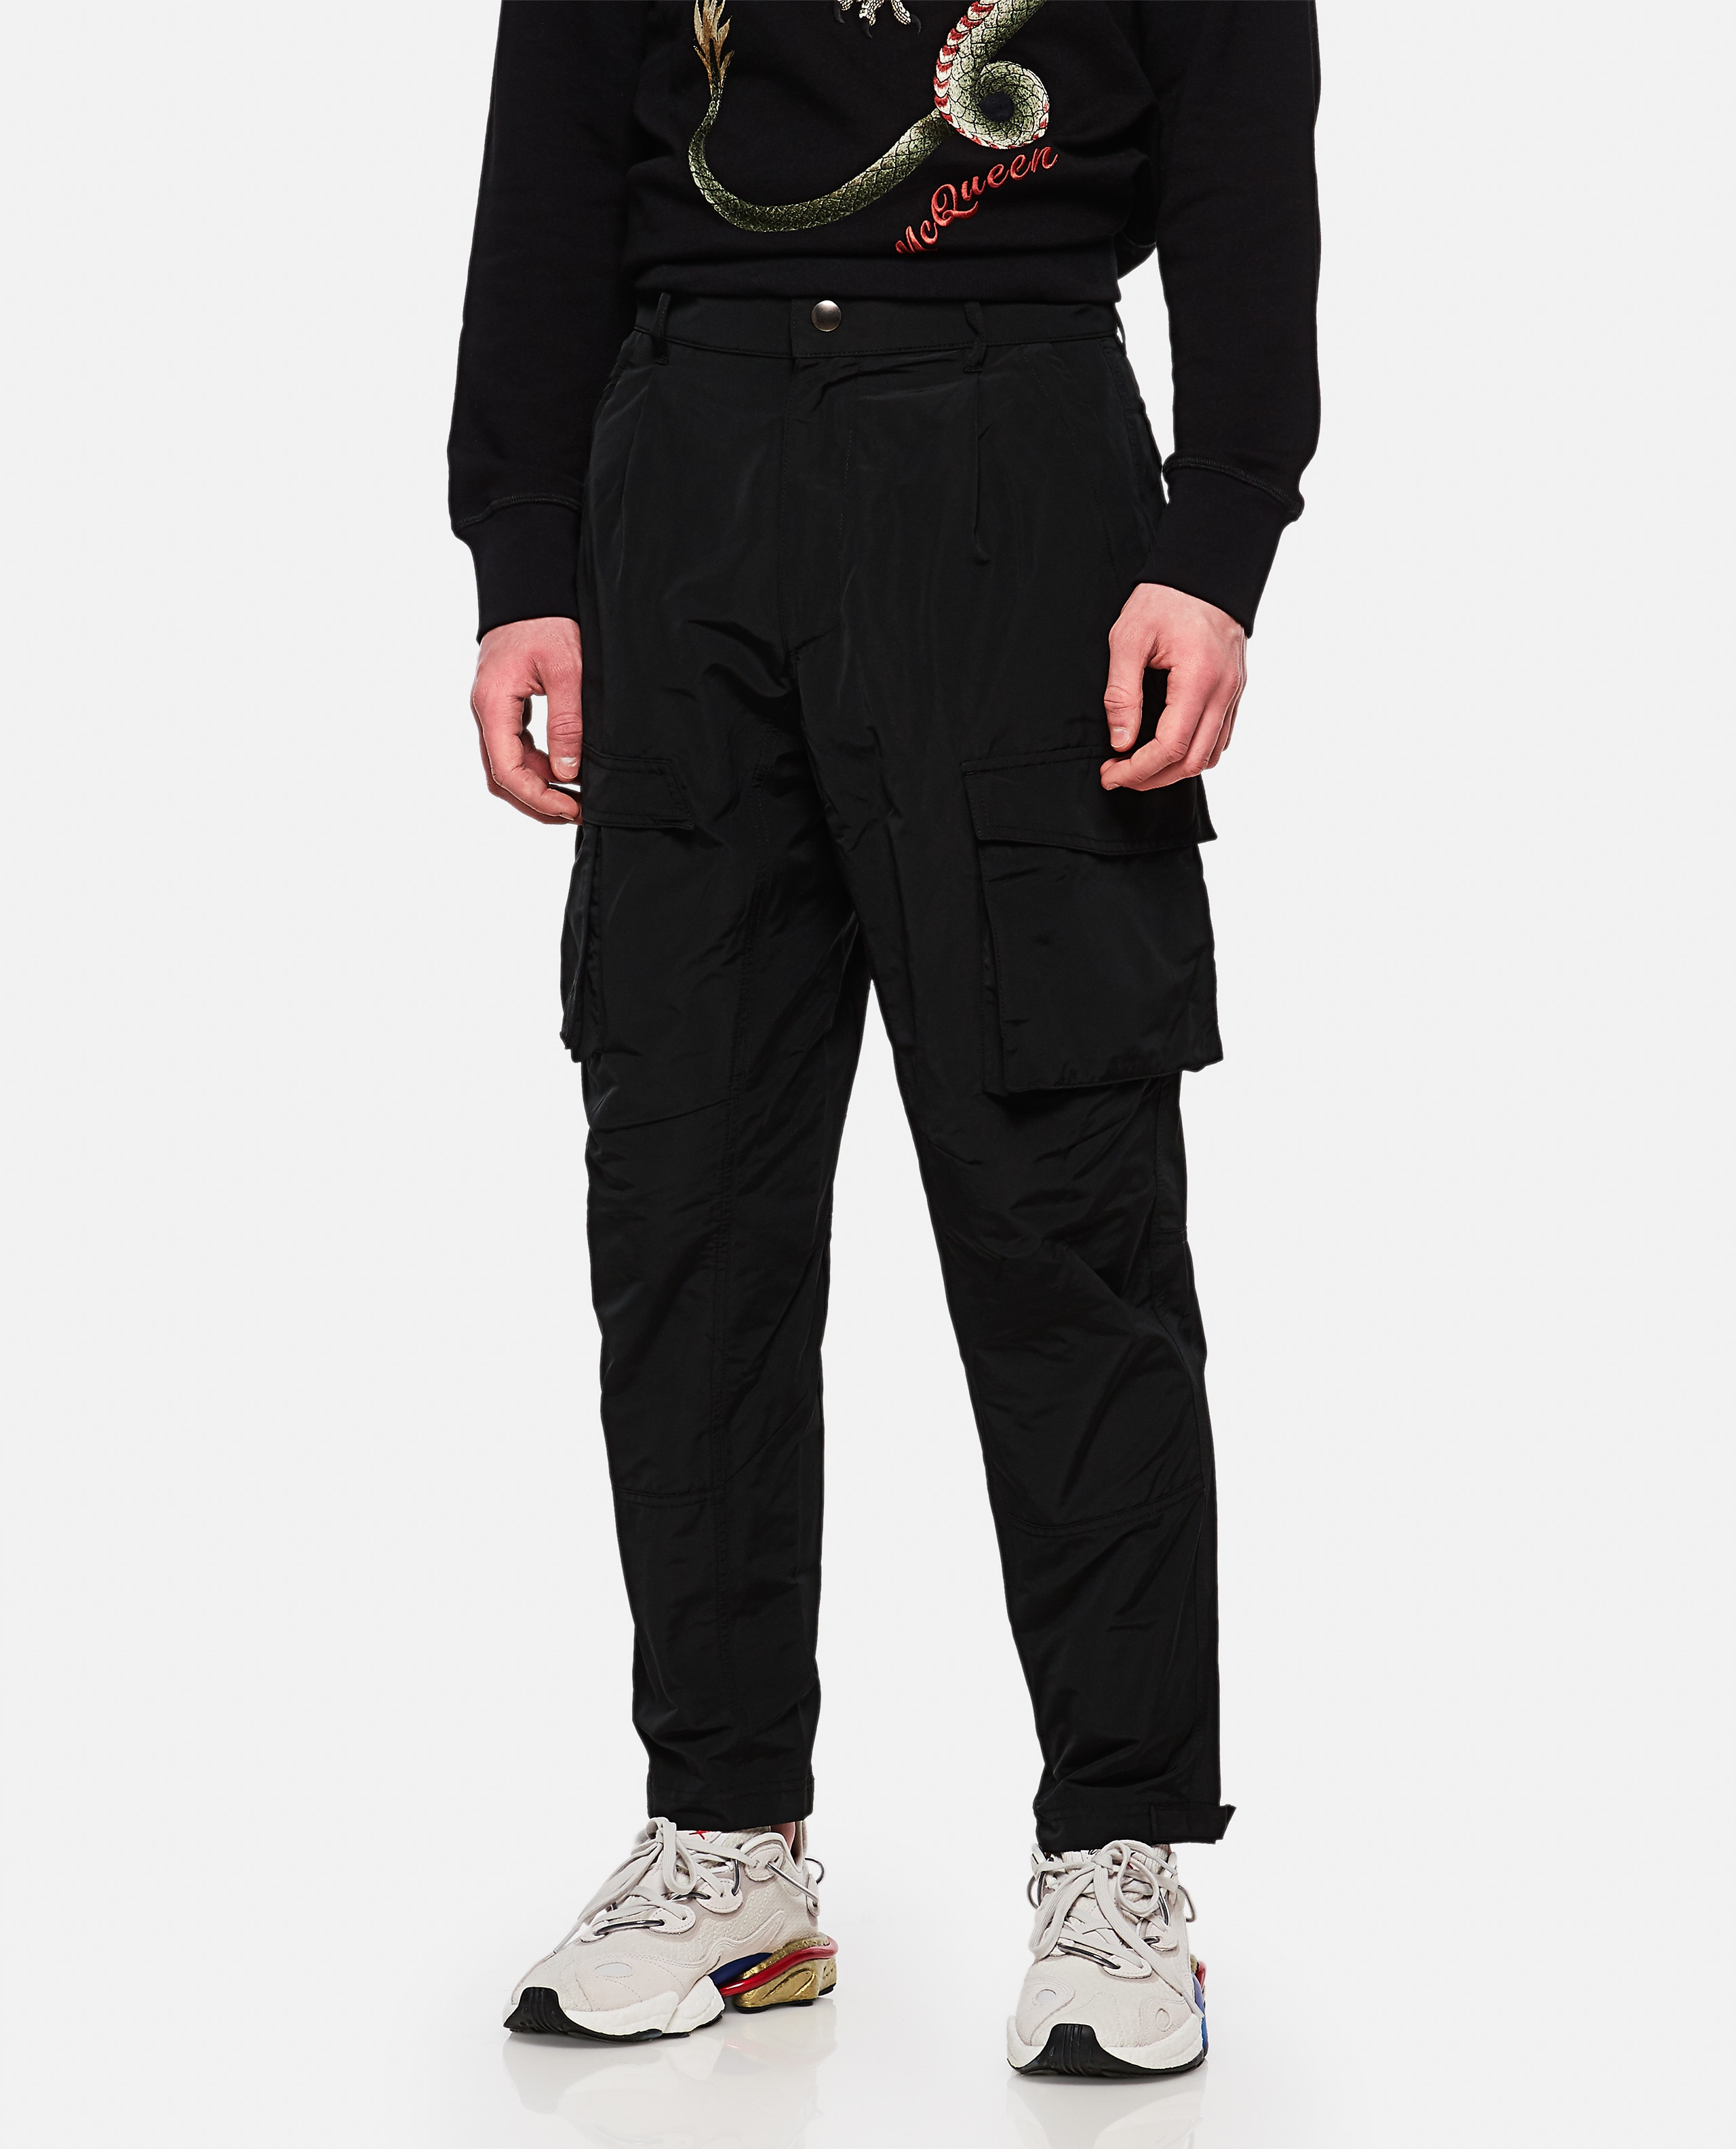 Wool trousers Men Givenchy 000228930033779 1